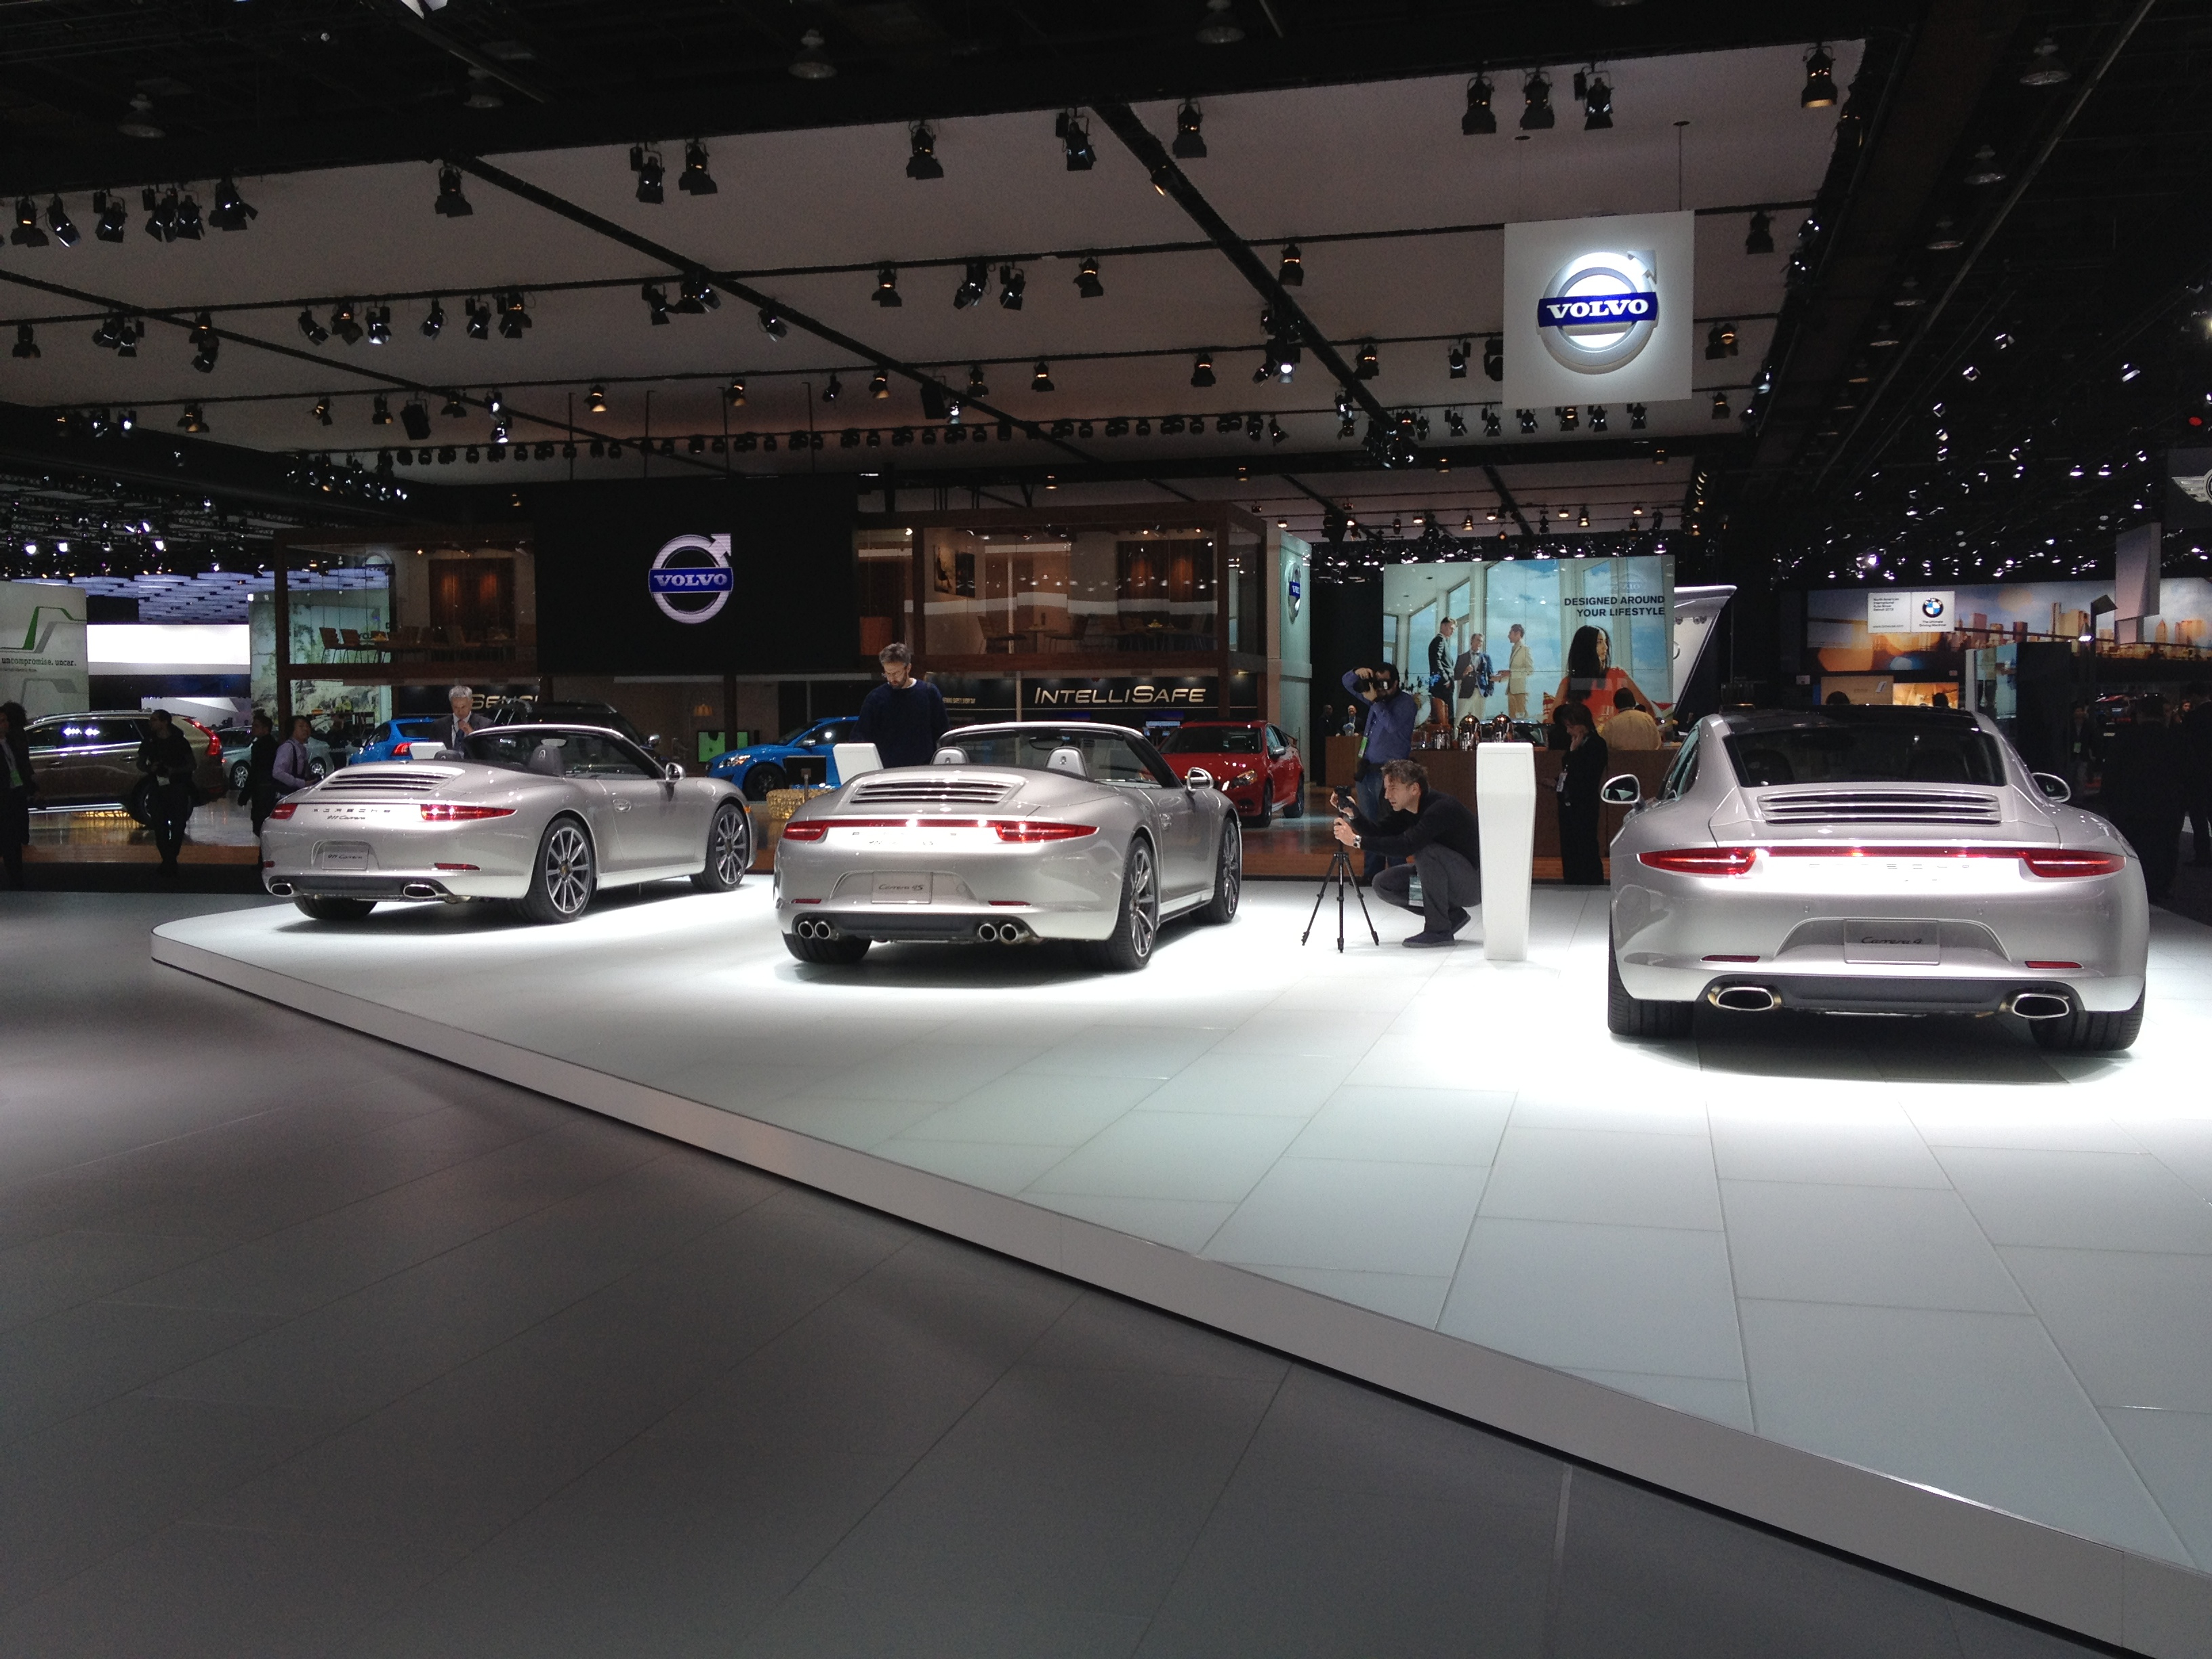 2013 Porsche 911 Carrera Cabriolet, Carrera 4S Cabriolet, and Carrera 4 at NAIAS 2013 By sarahlarson